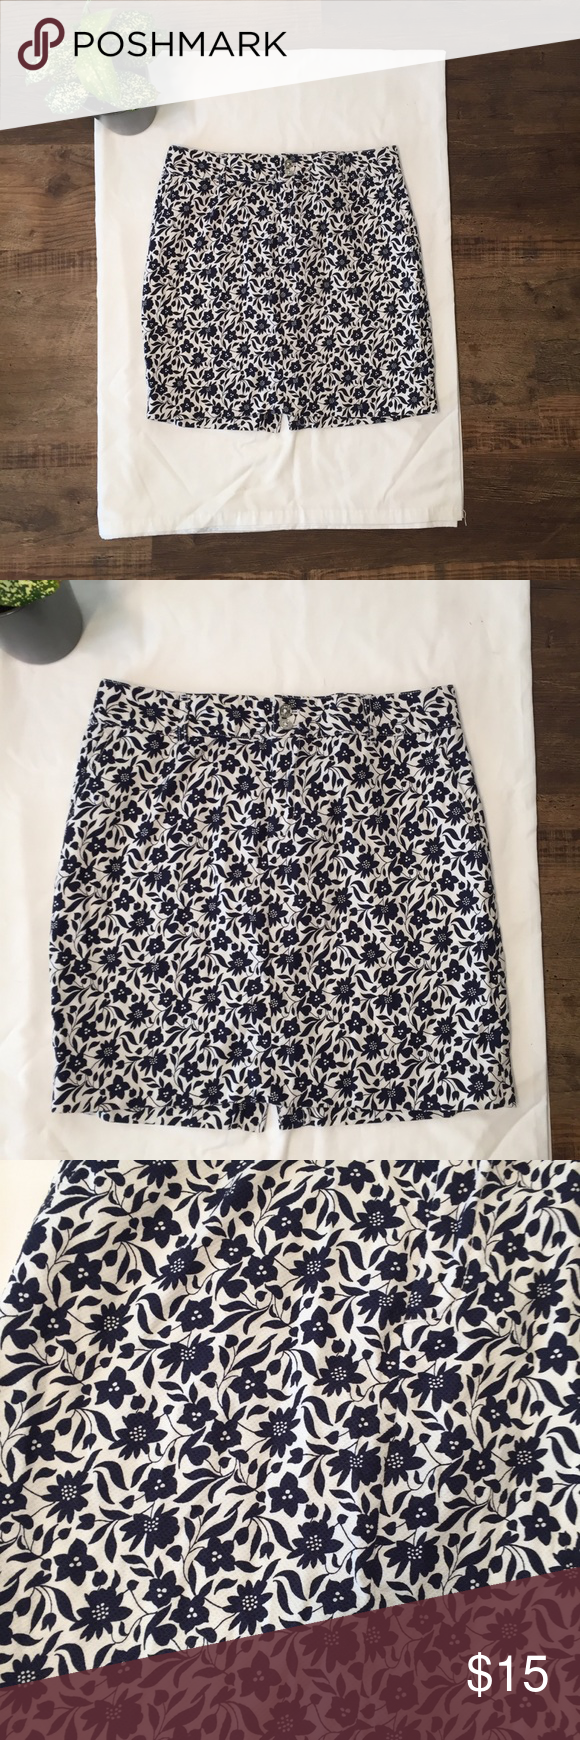 Women's Clothing Skirts Humor Chaps Navy Blue Floral Ruffled Lined Skirt Size S Special Buy